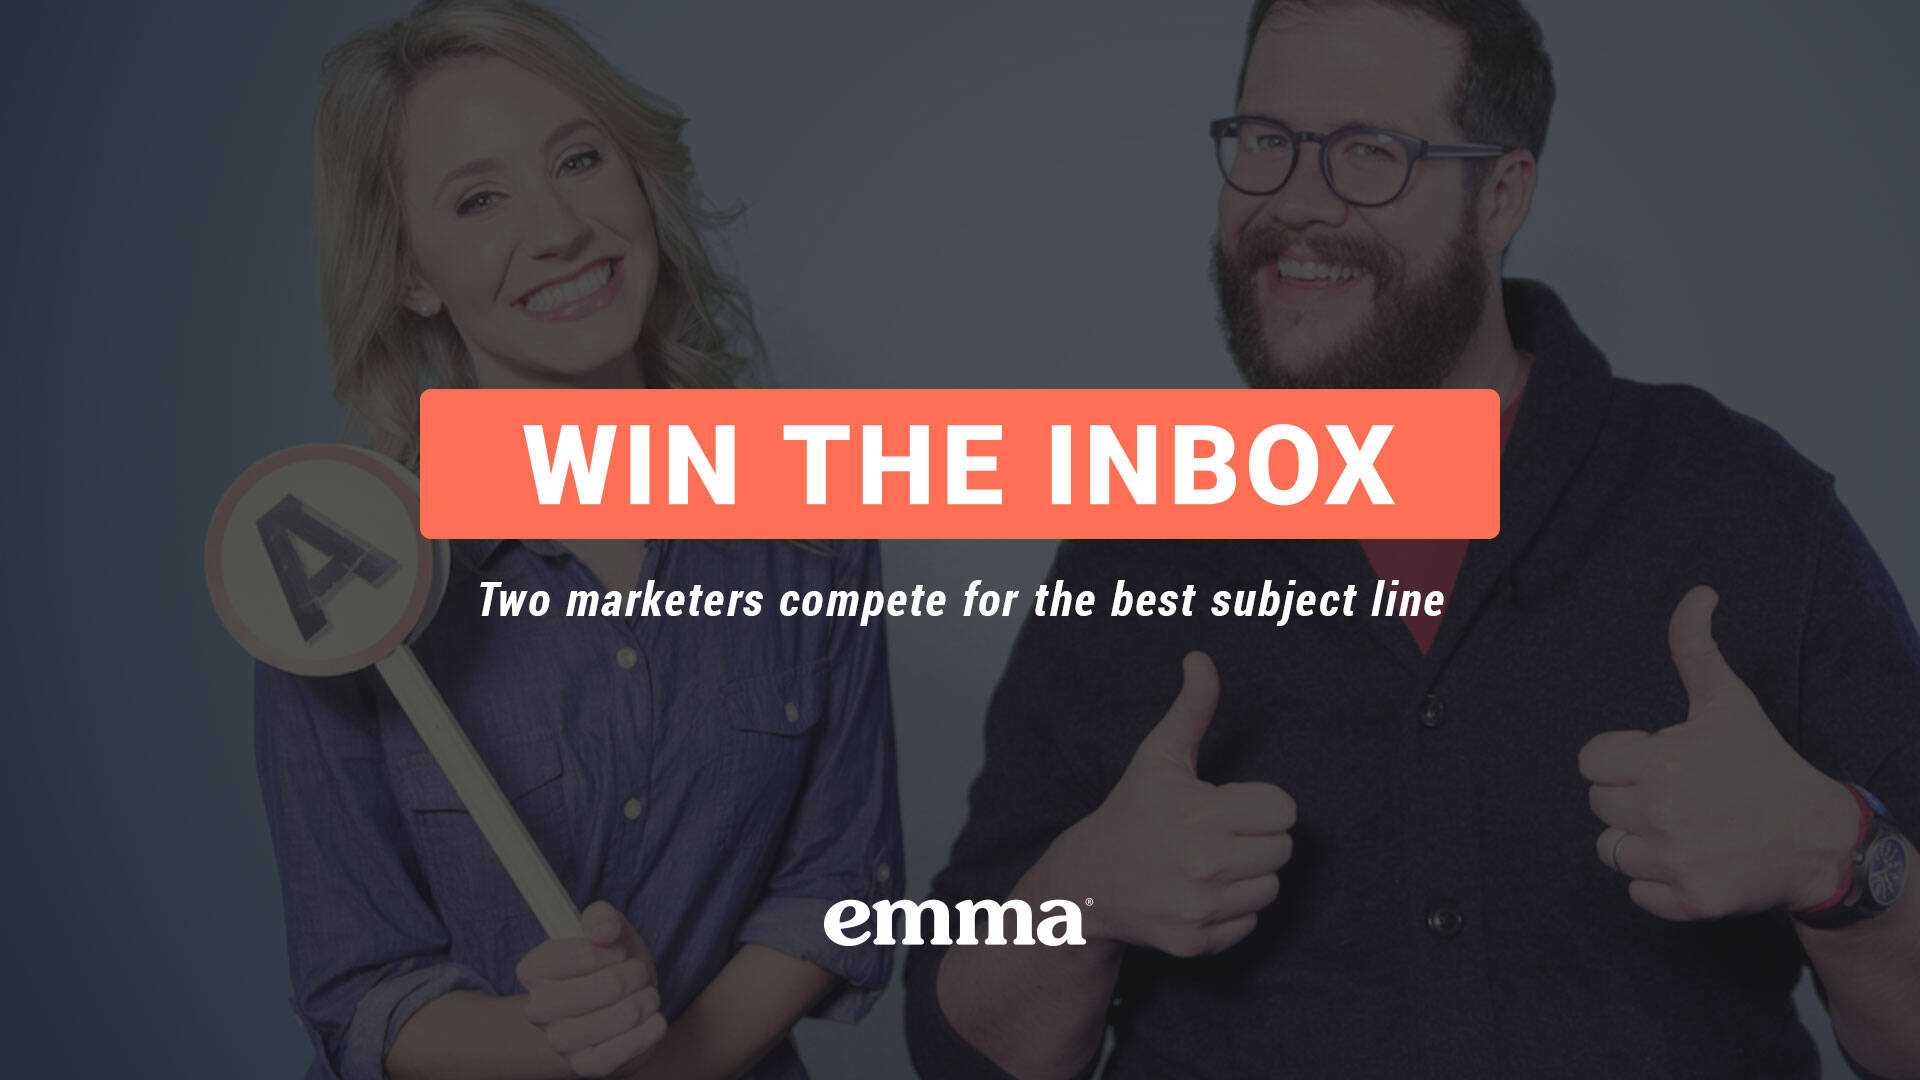 Emma video on winning the email inbox Friday Favorites